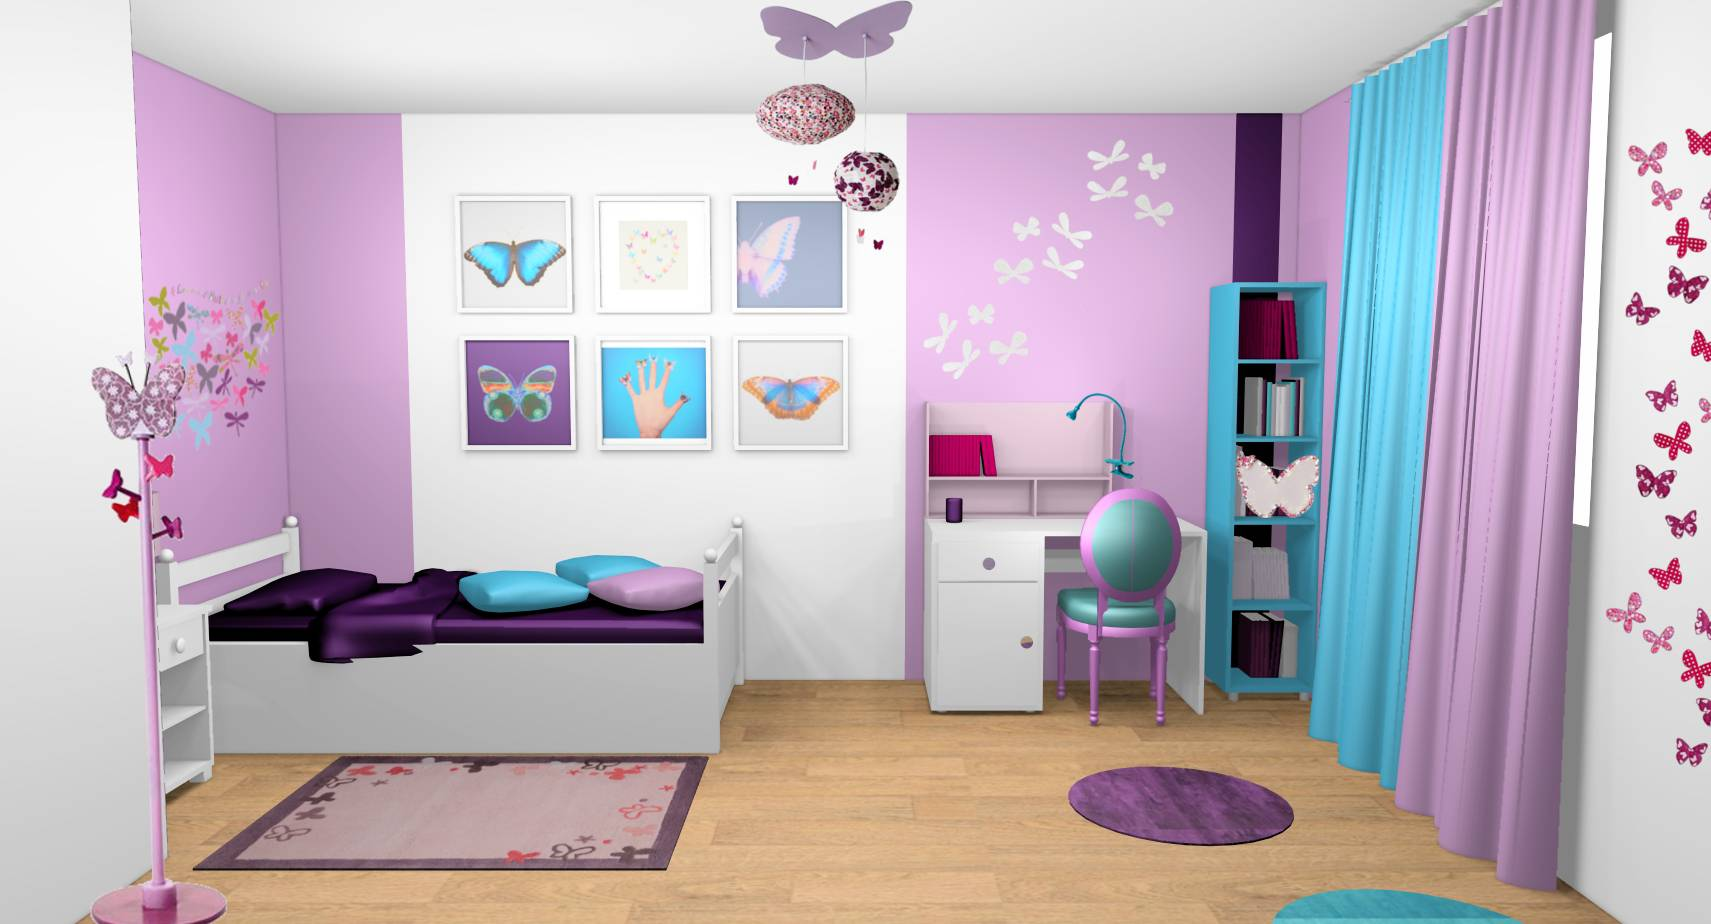 les chambres d 39 enfants vues par votre d coratrice d 39 int rieur designement v tre. Black Bedroom Furniture Sets. Home Design Ideas